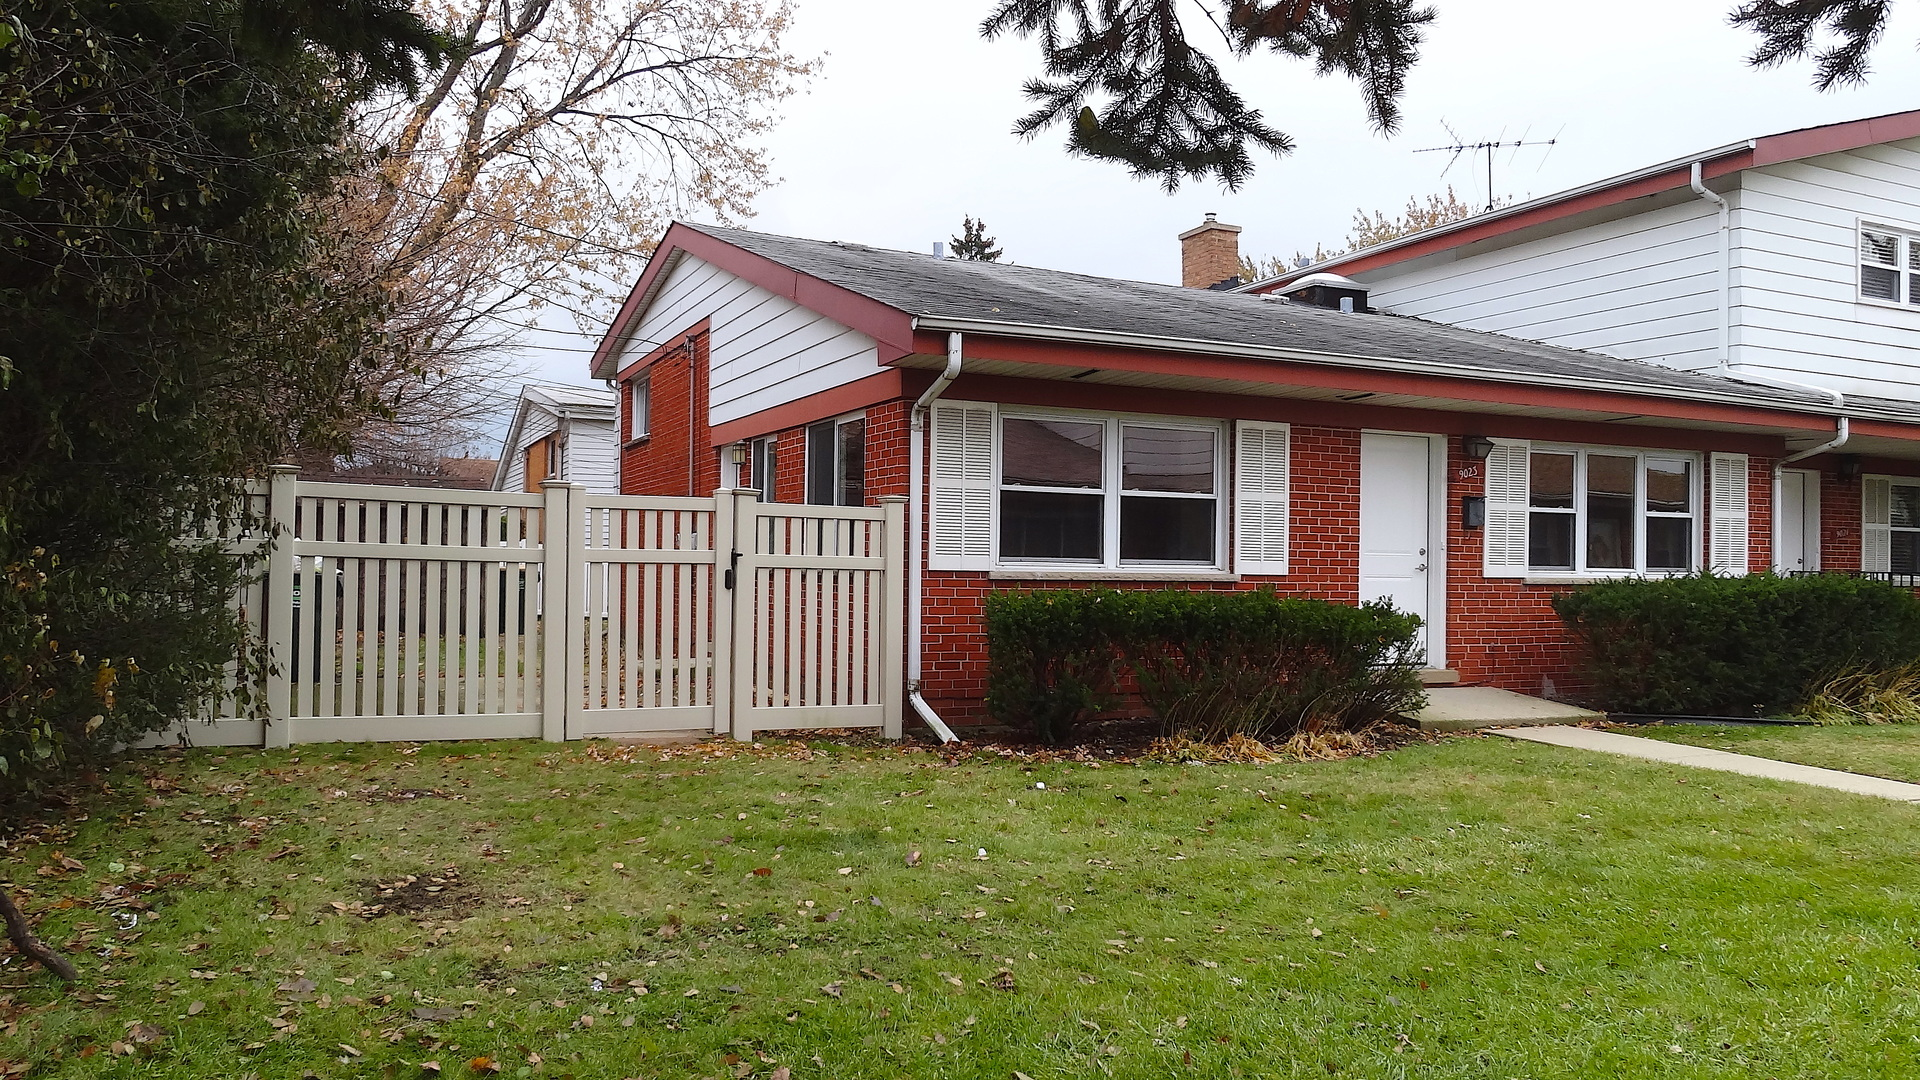 One of Niles 3 Bedroom Homes for Sale at 9023 North Clifton Avenue